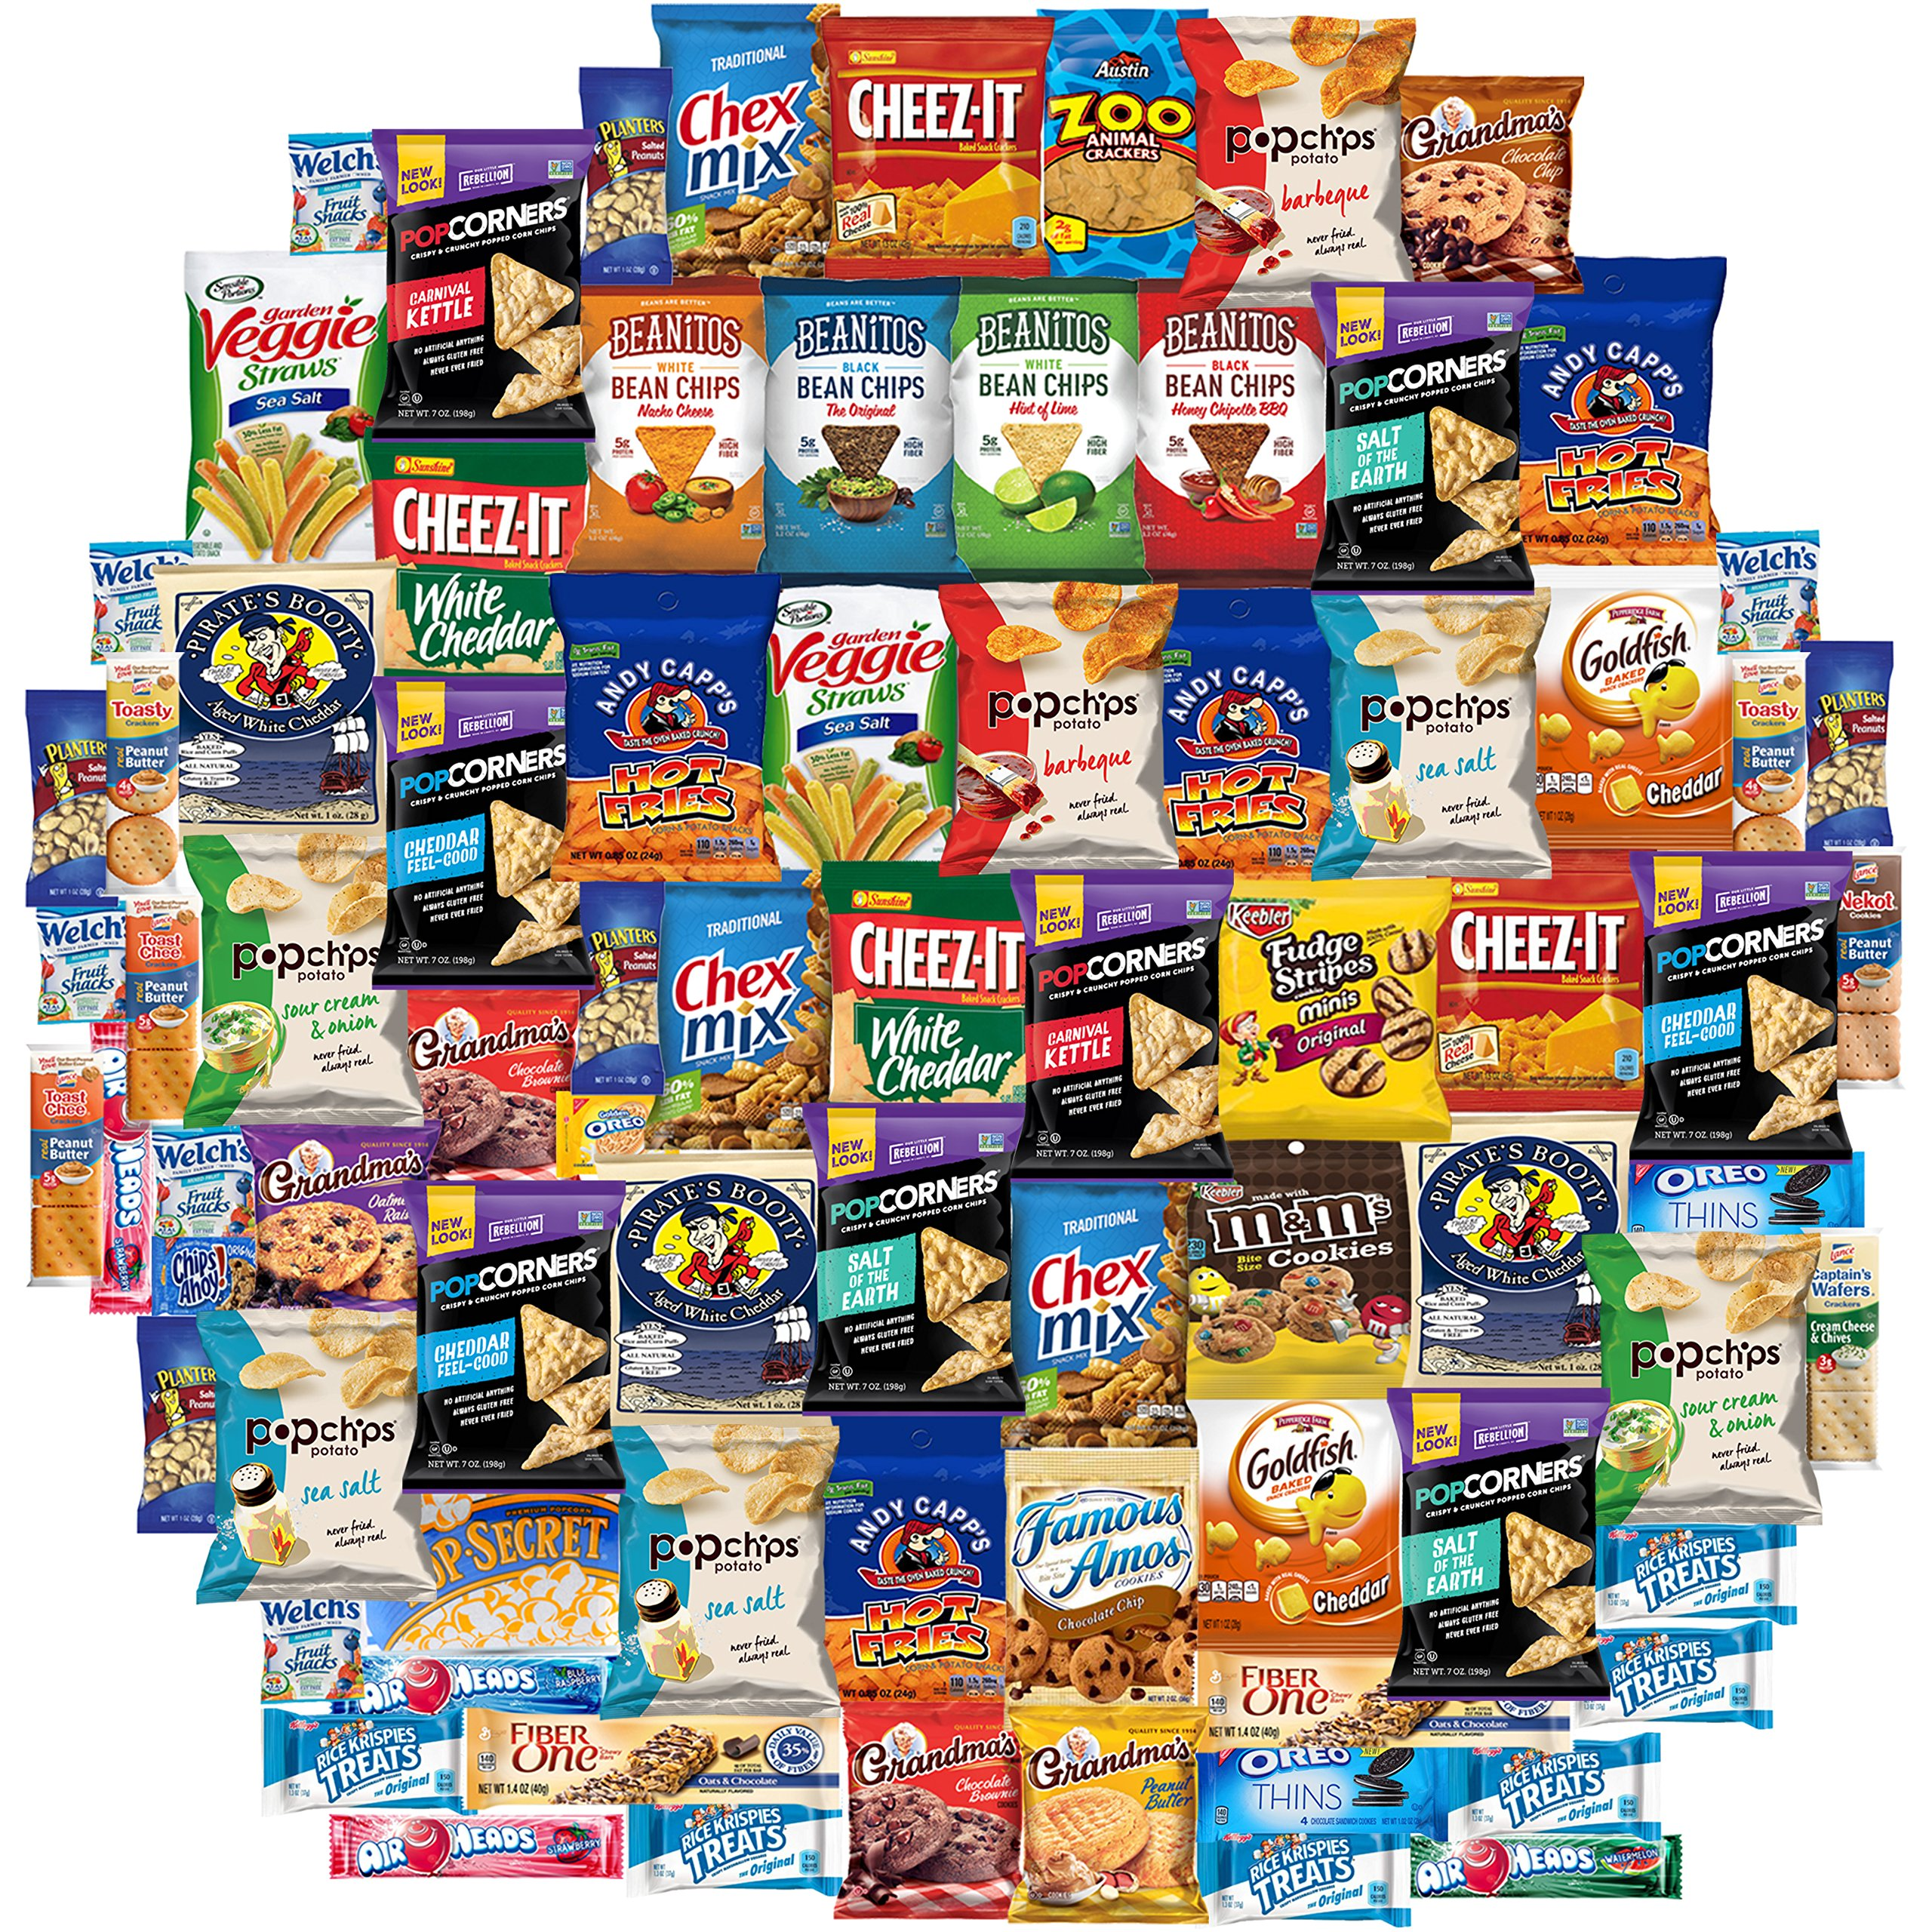 Ultimate Snacks Chips Cookies Candies Crackers & More Care Package Variety Pack Includes Goldfish Snyders Chex Mix Cheez It Beanitos Popcorners Oreos Air Heads & More Bulk Sampler (80 Count)